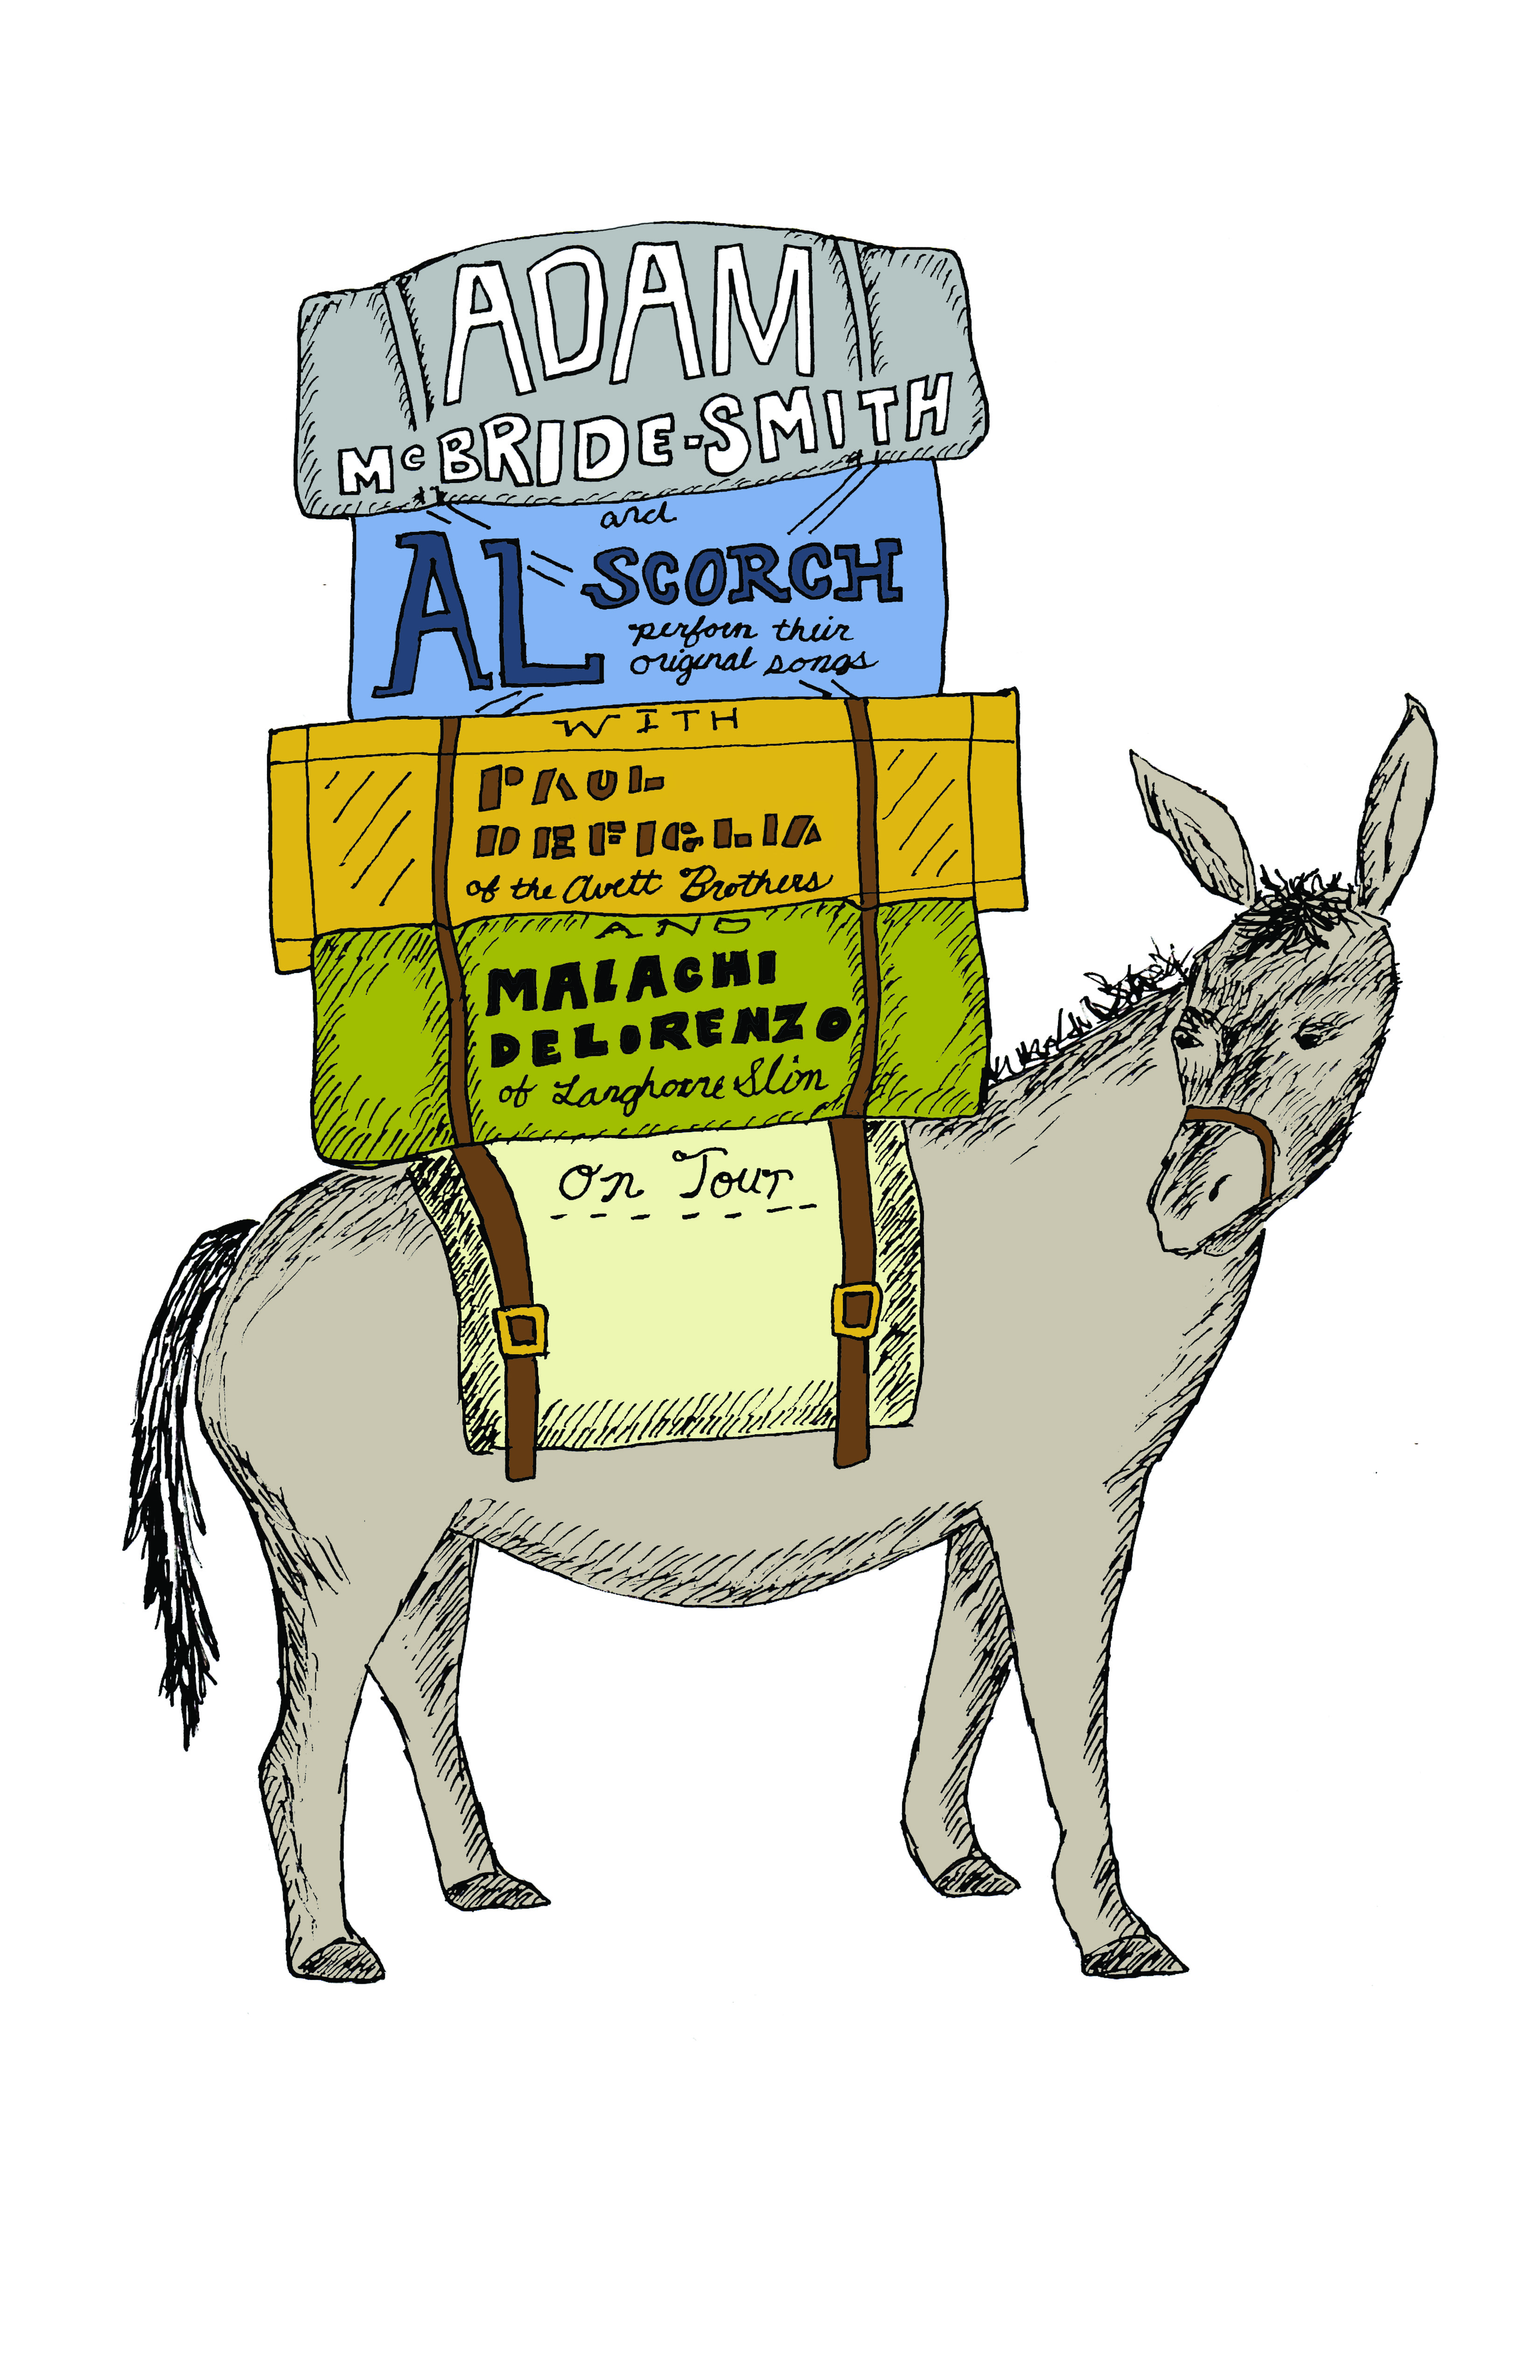 Al Scorch Tour Donkey by Mary Clare Butler